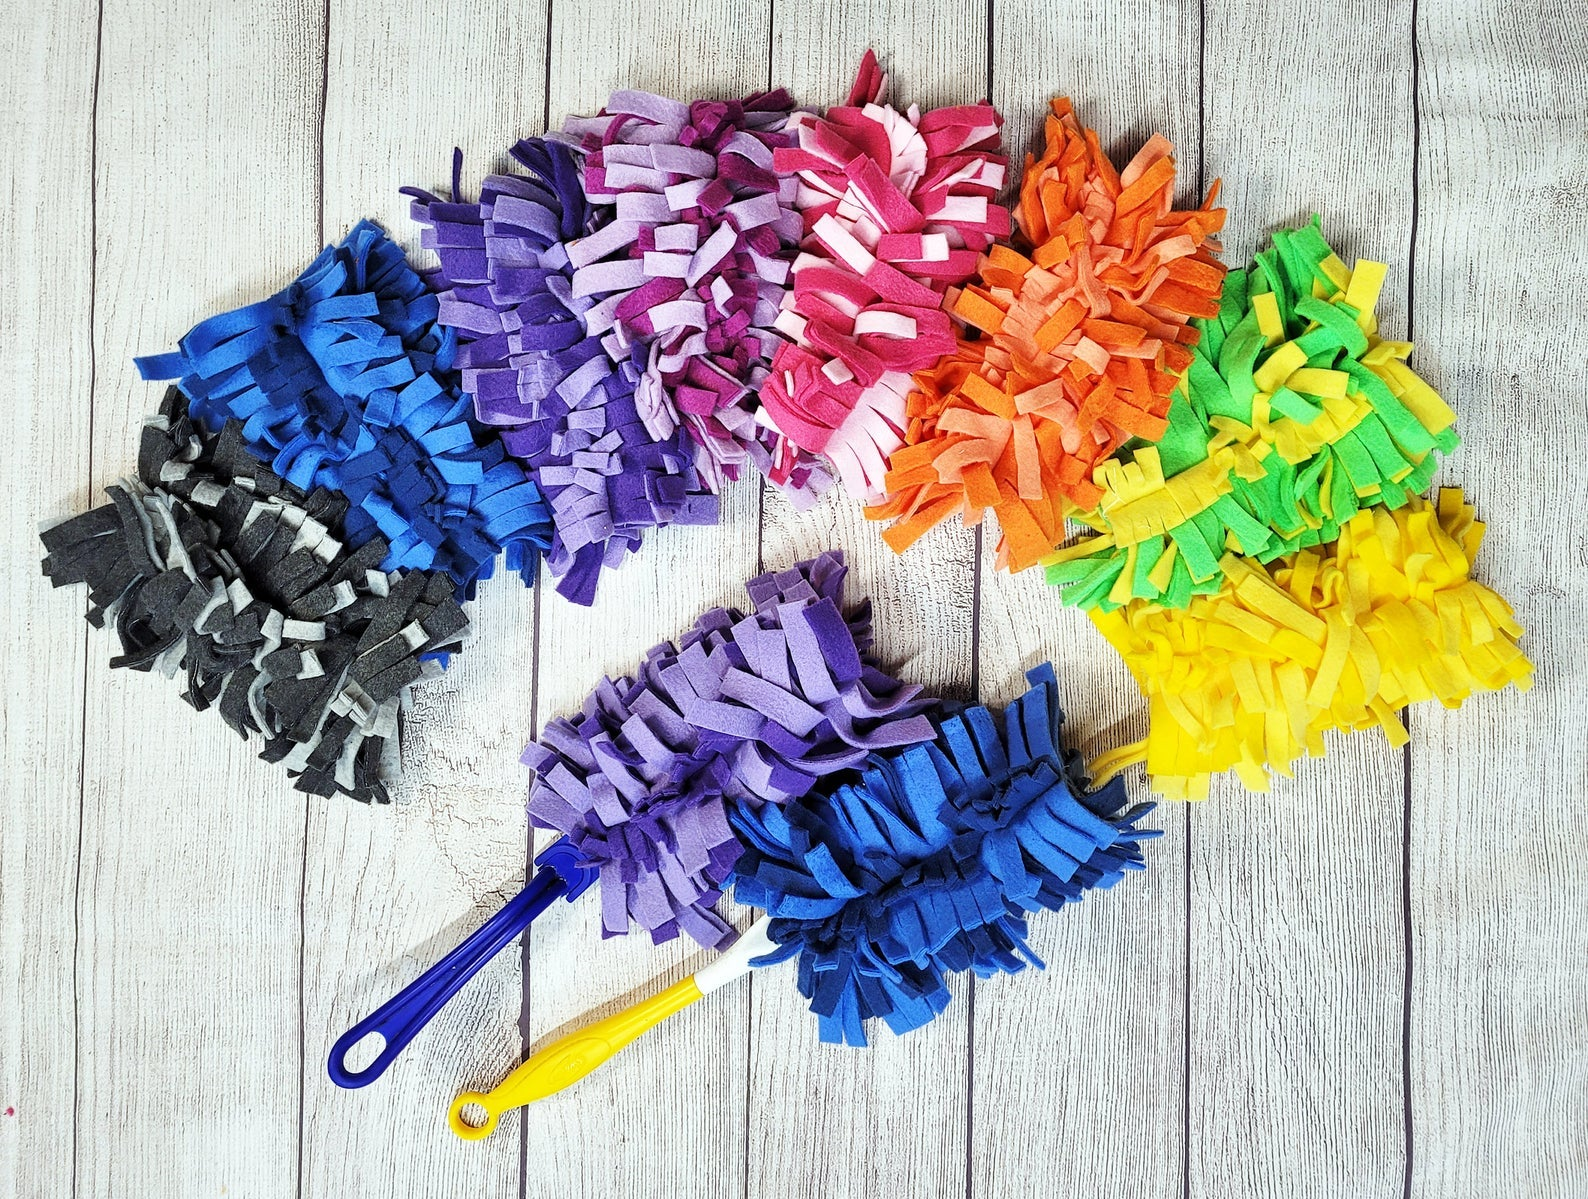 various colors of the reusable dusters